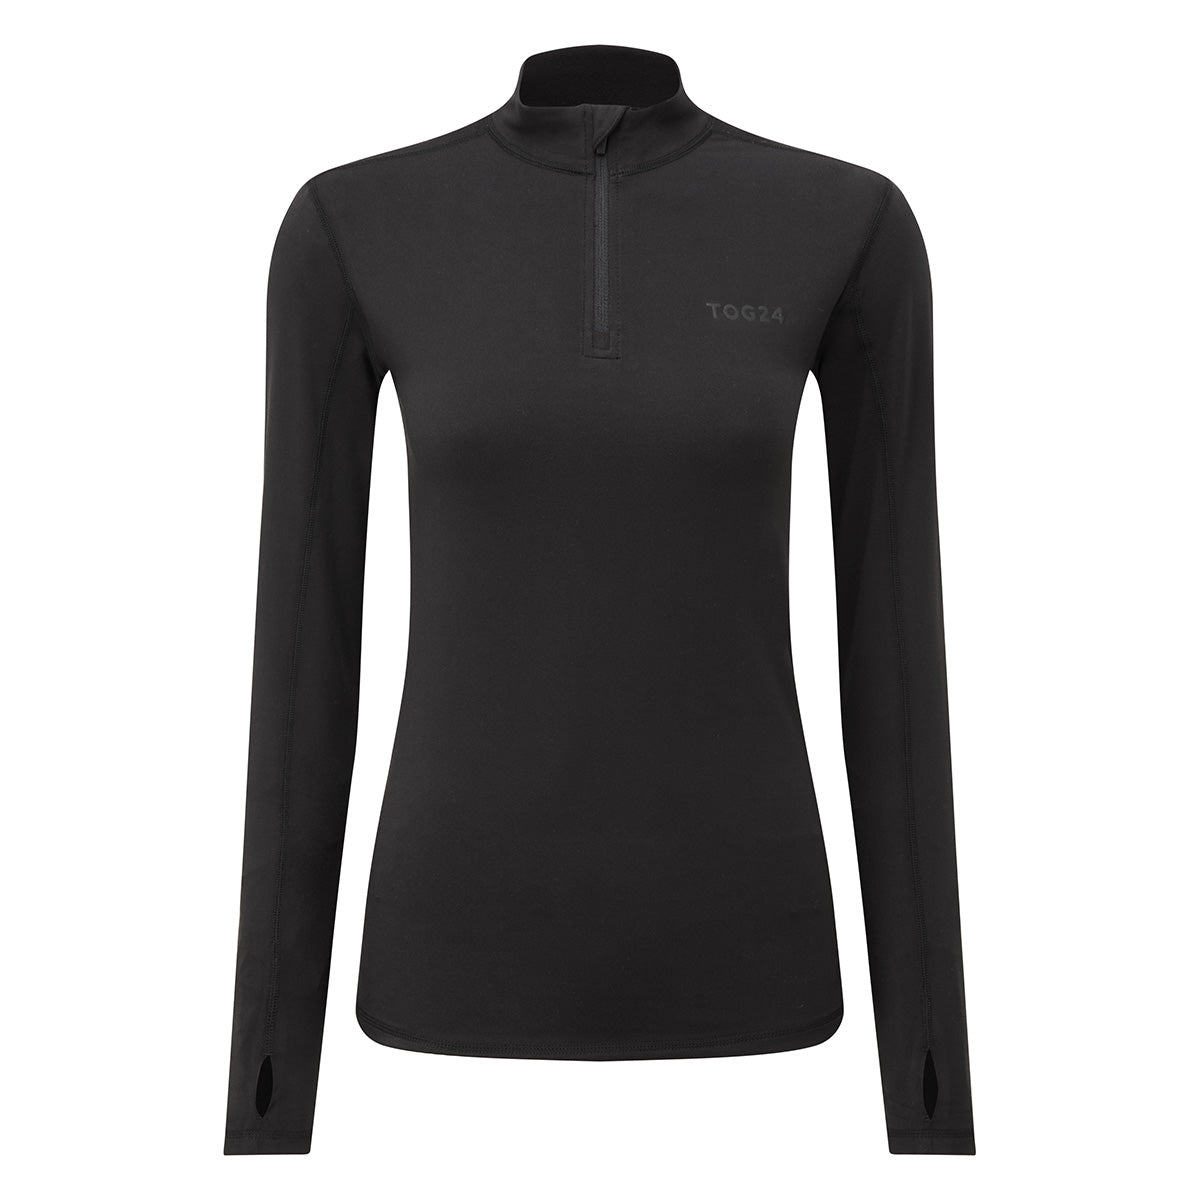 Snowdon Womens Thermal Zip Neck - Black image 4